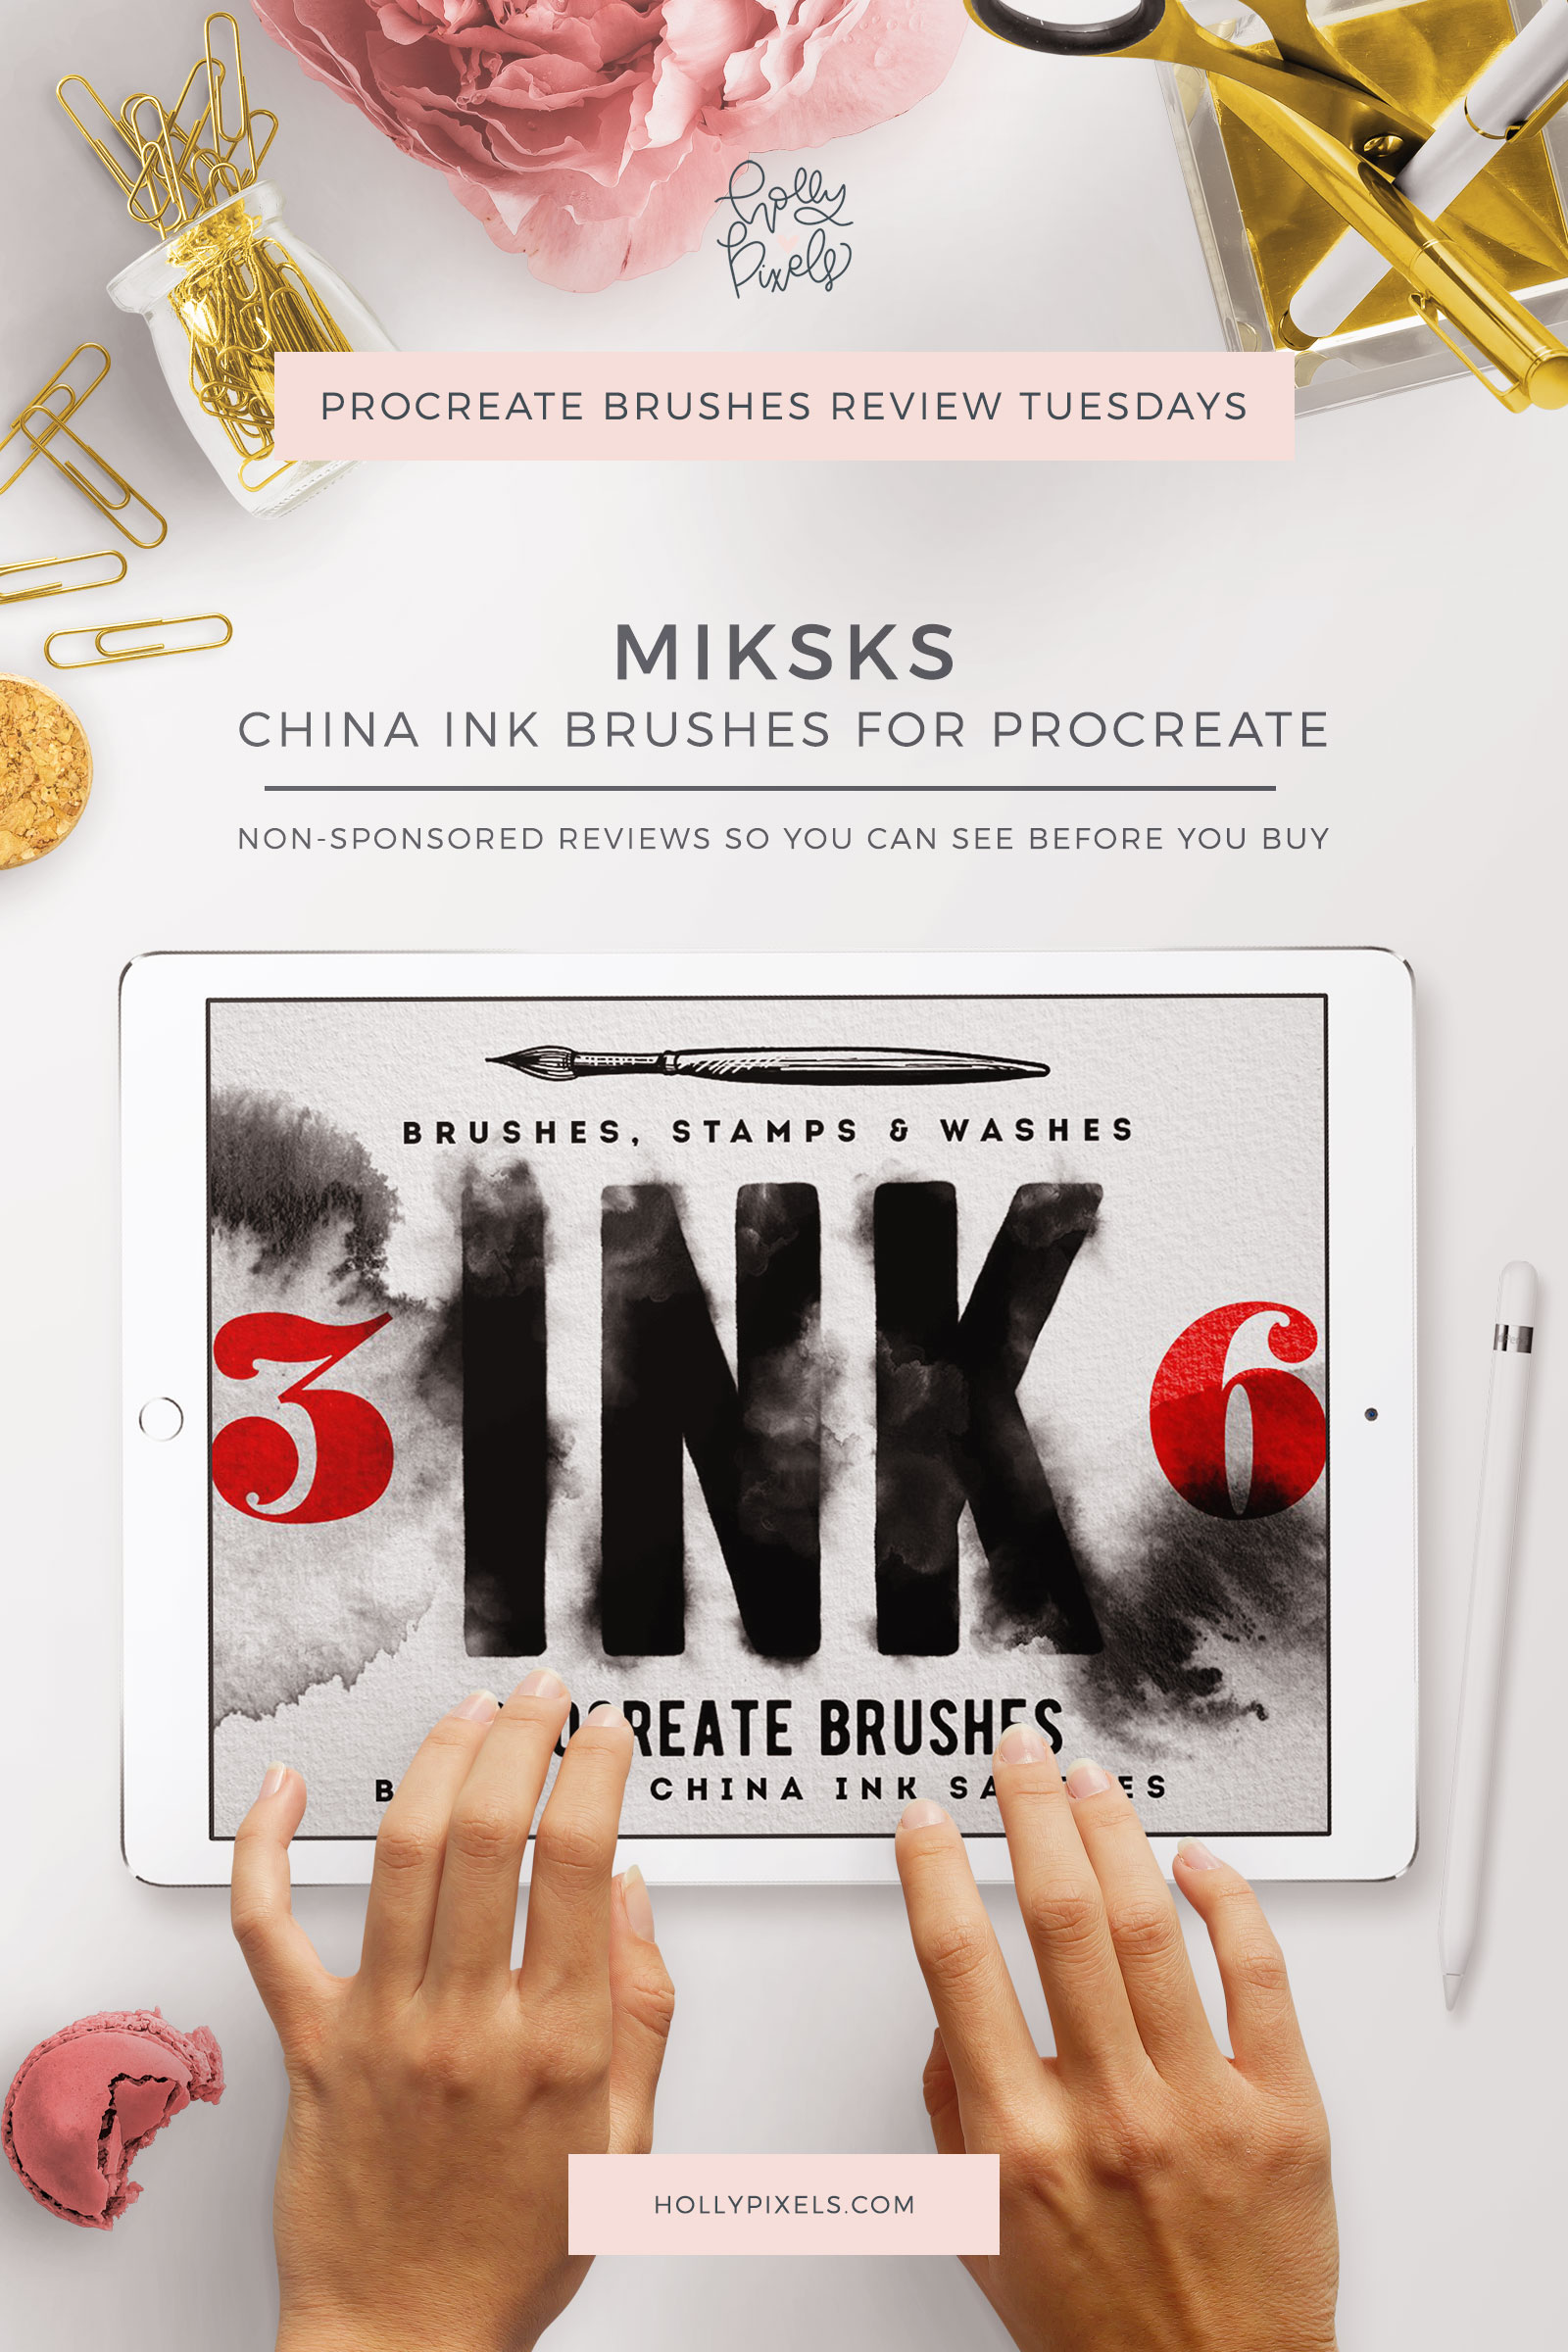 This week's Procreate brushes review features China Ink Washes by MiksKS that can be purchased at Creative Market.